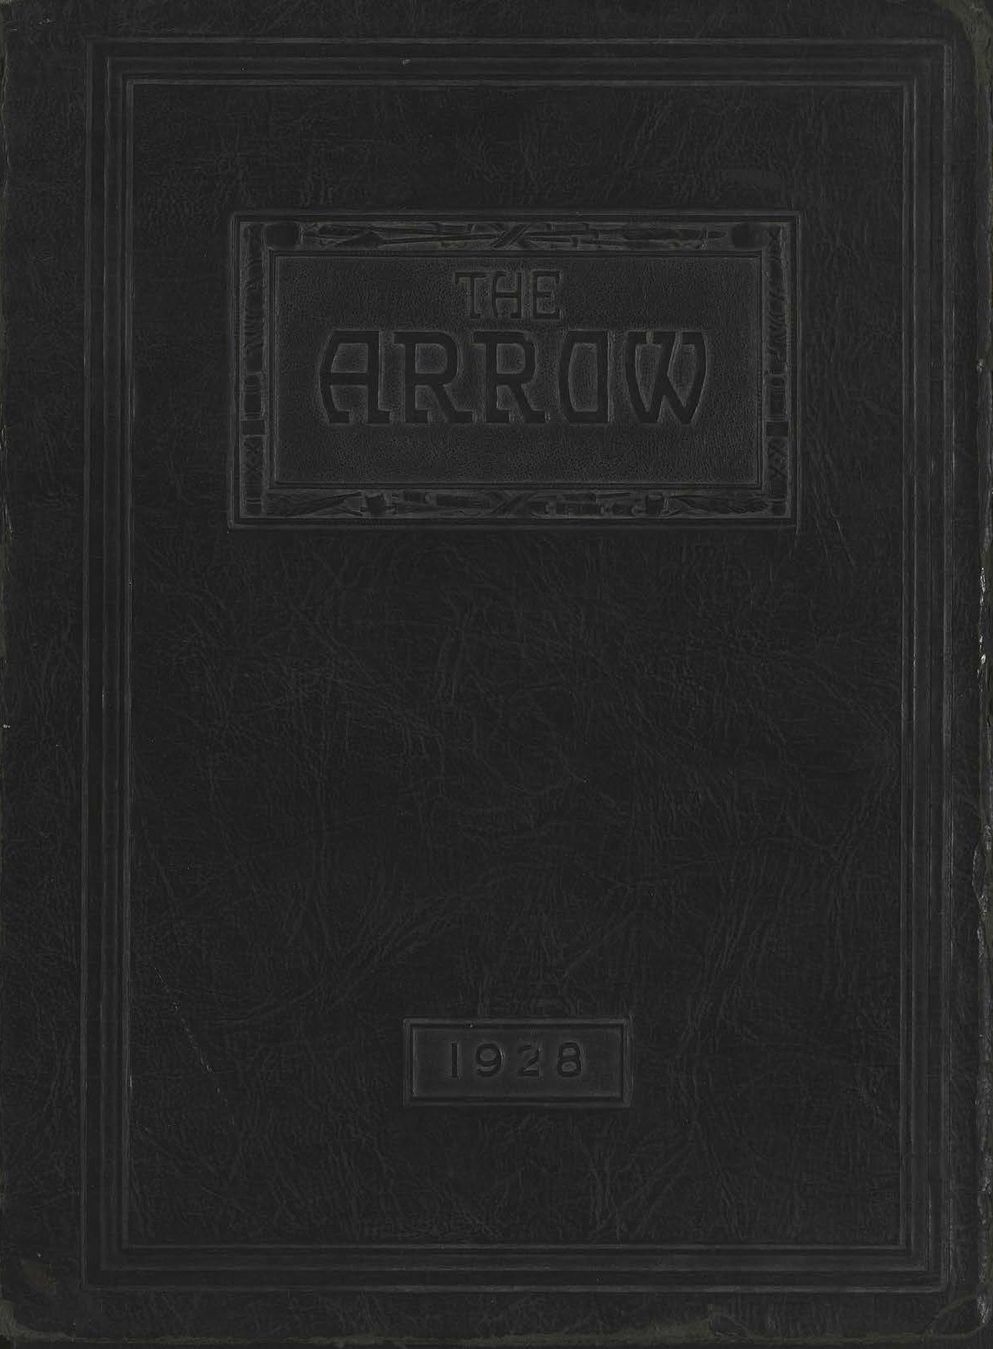 The Arrow 1928